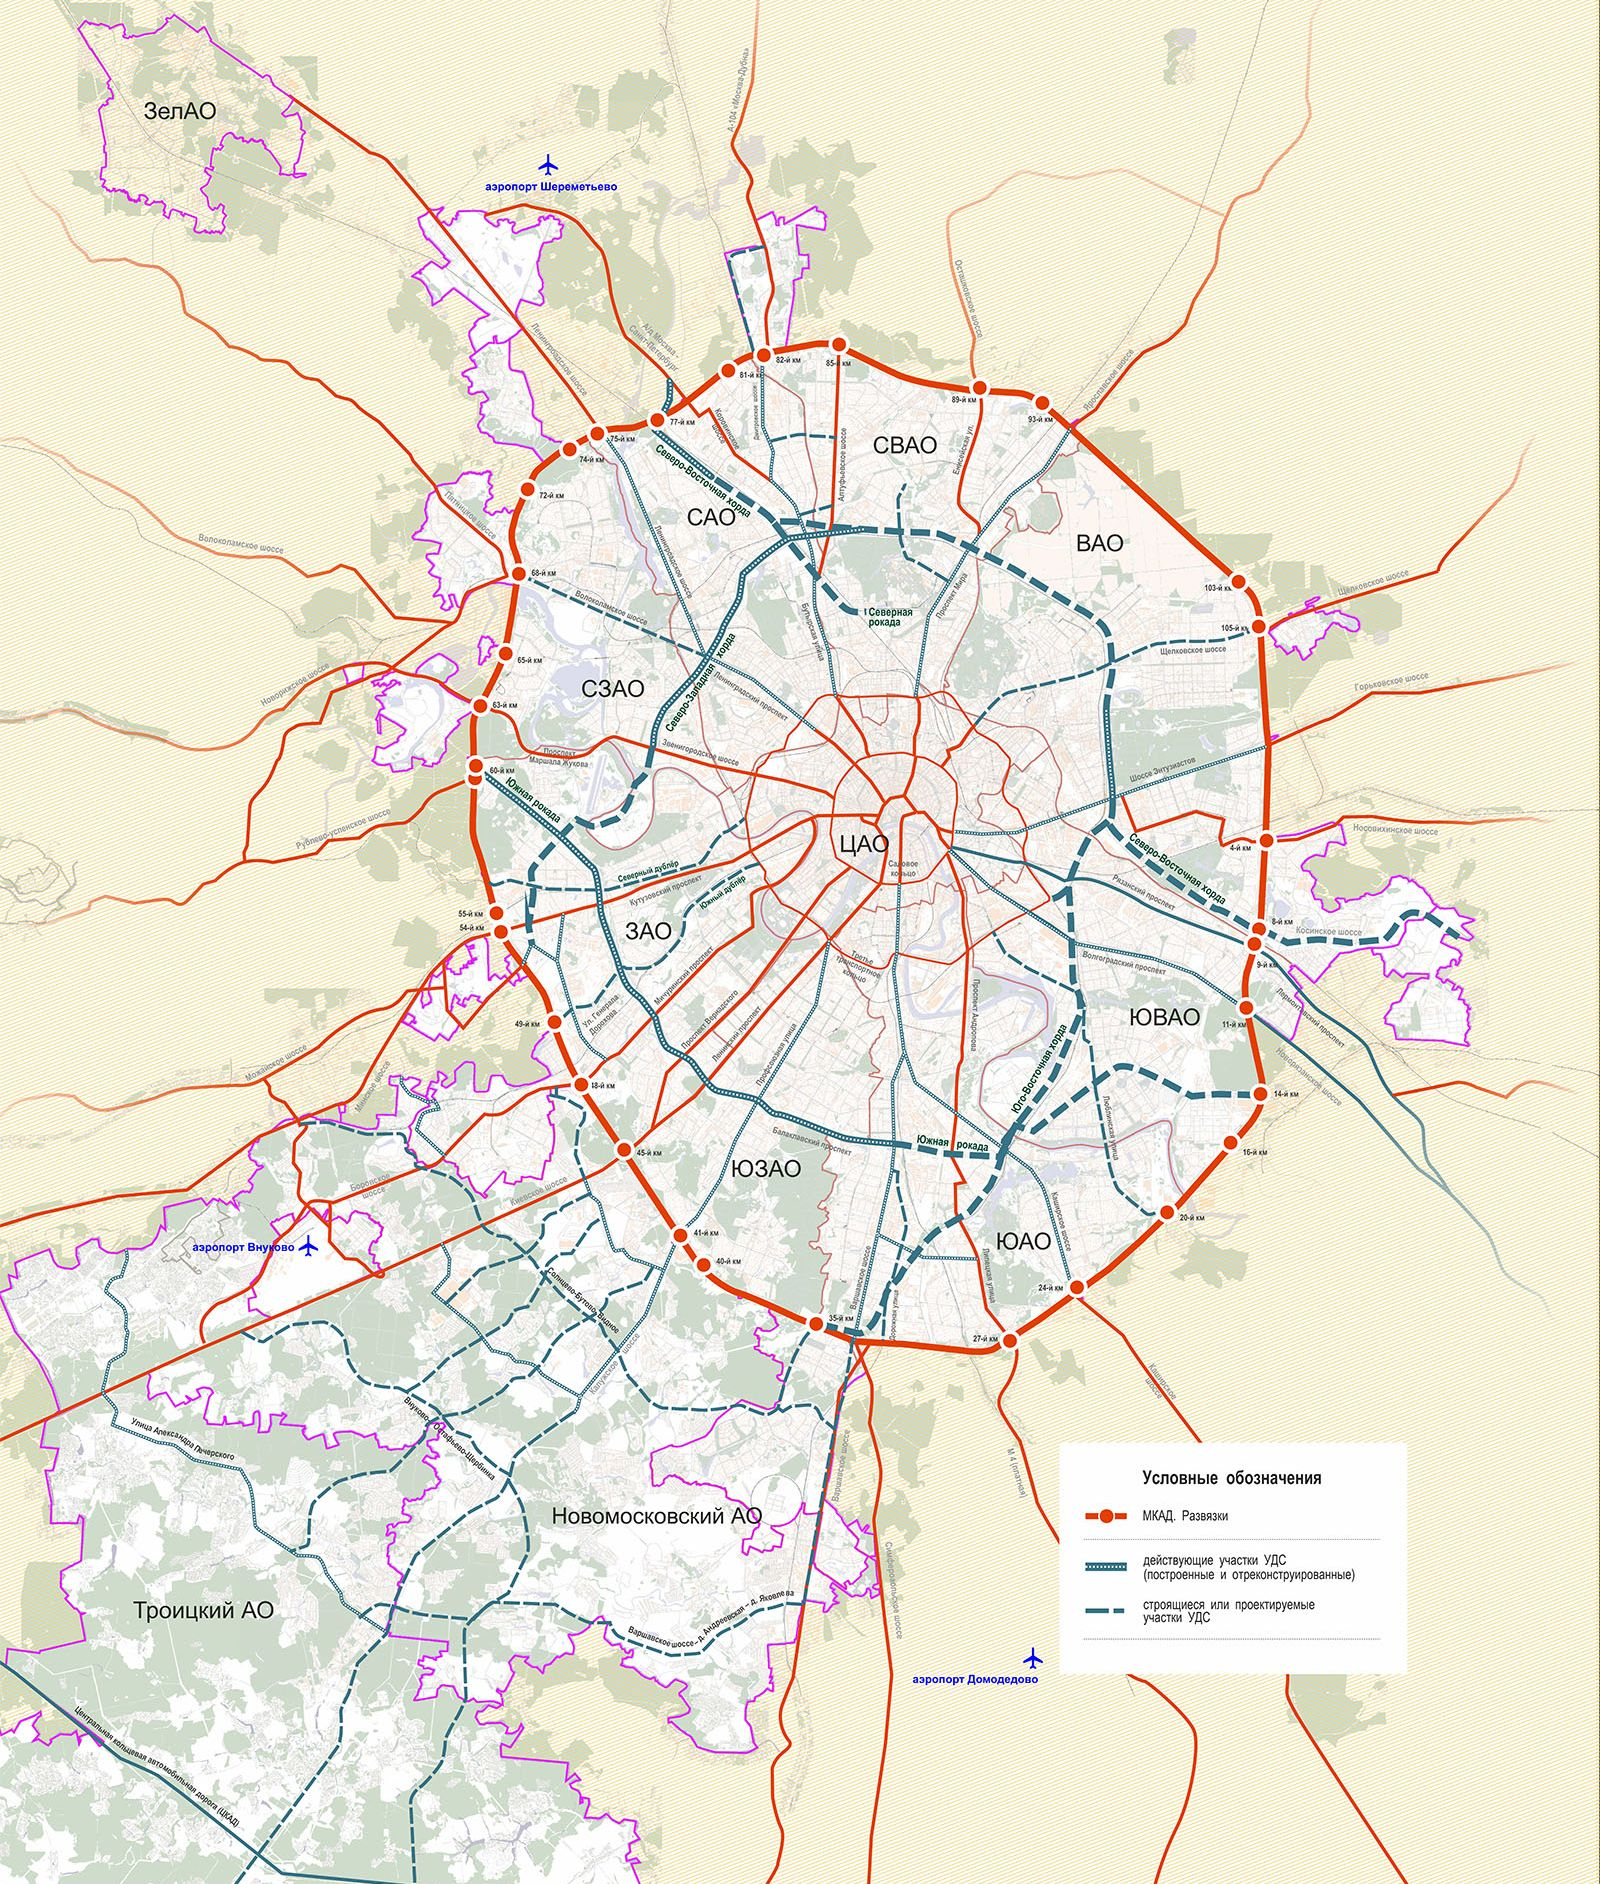 Plan roads for 2021